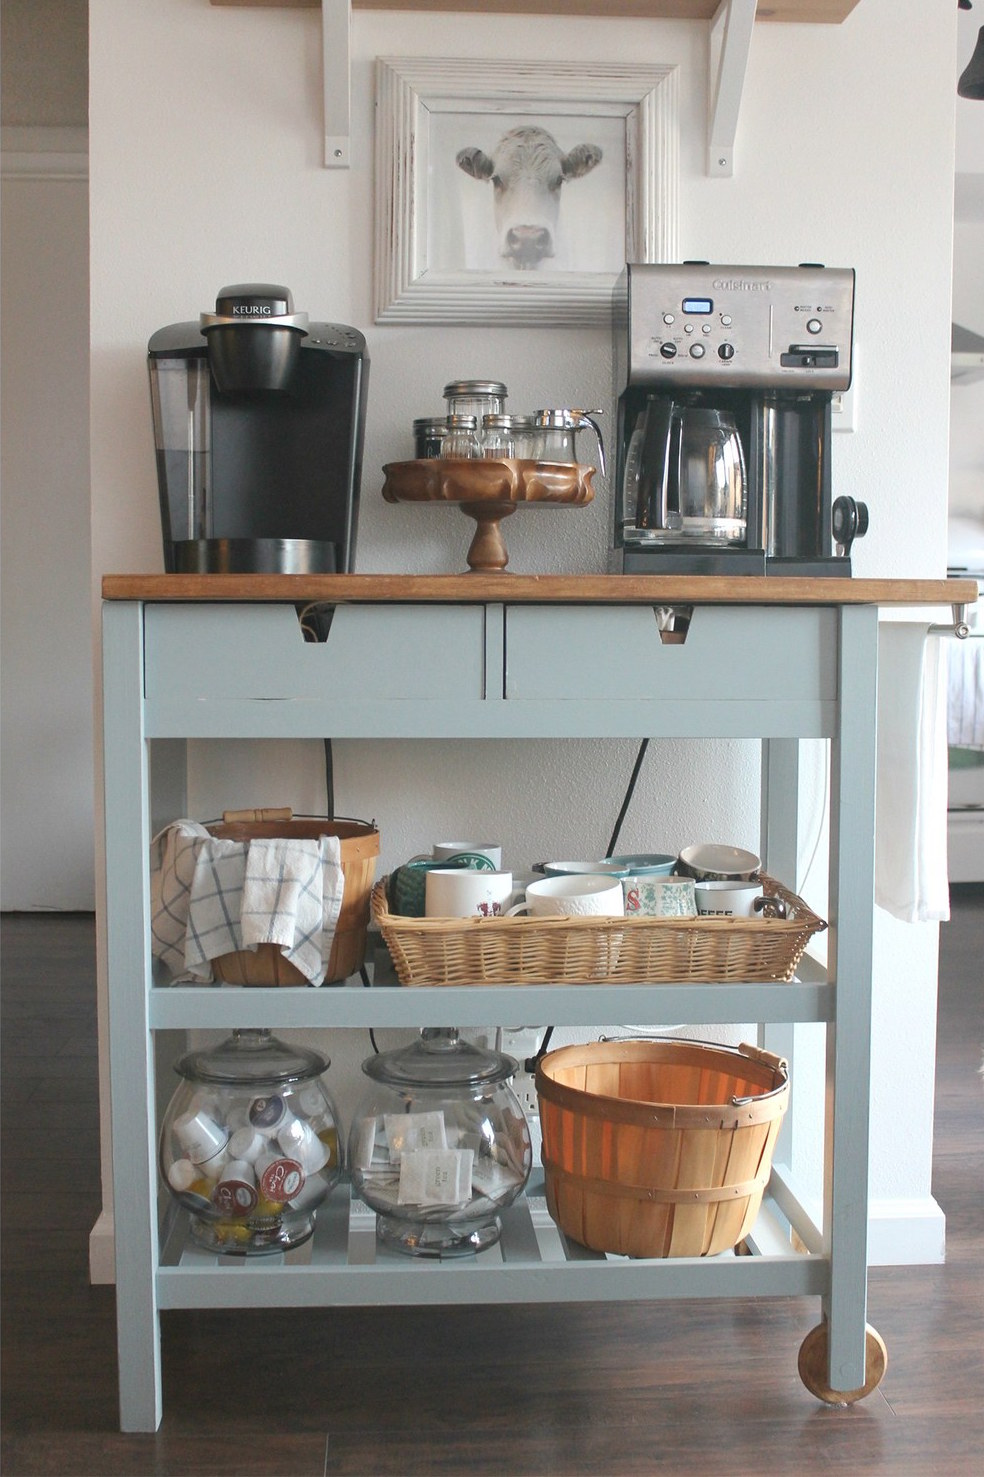 7 Brilliant IKEA Hacks To Organize Your Kitchen